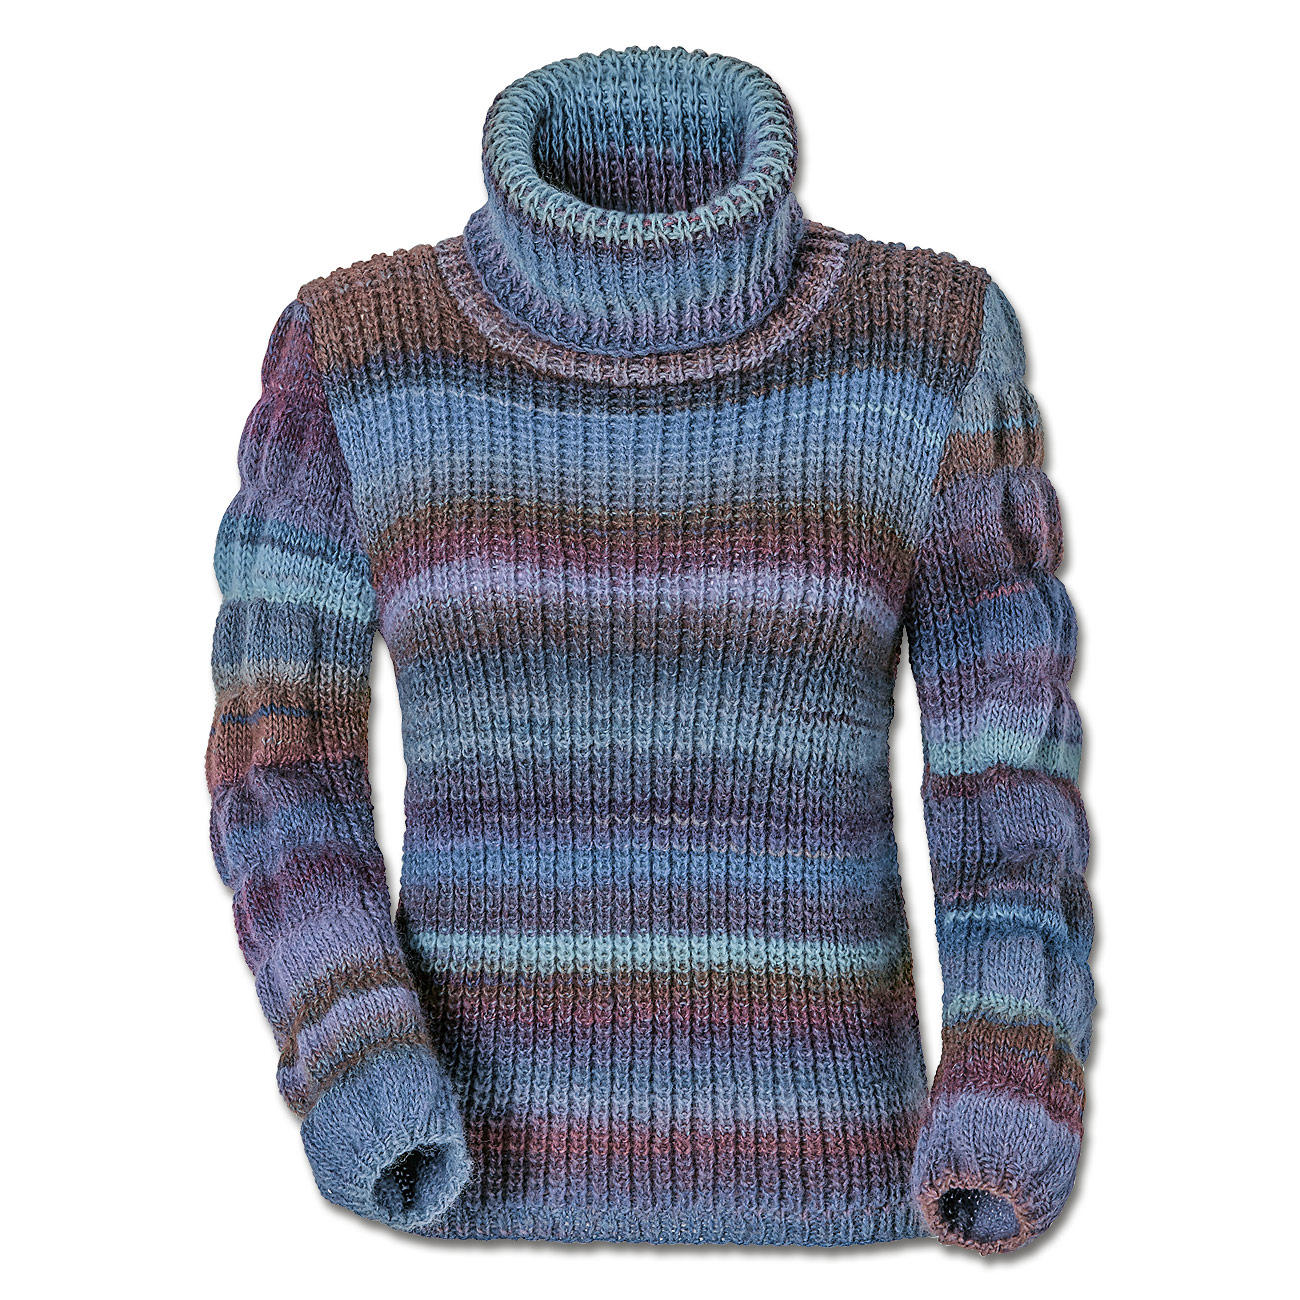 Anleitung 194 6 pullover aus scala von junghans wolle 1 - Junghanns wolle ...